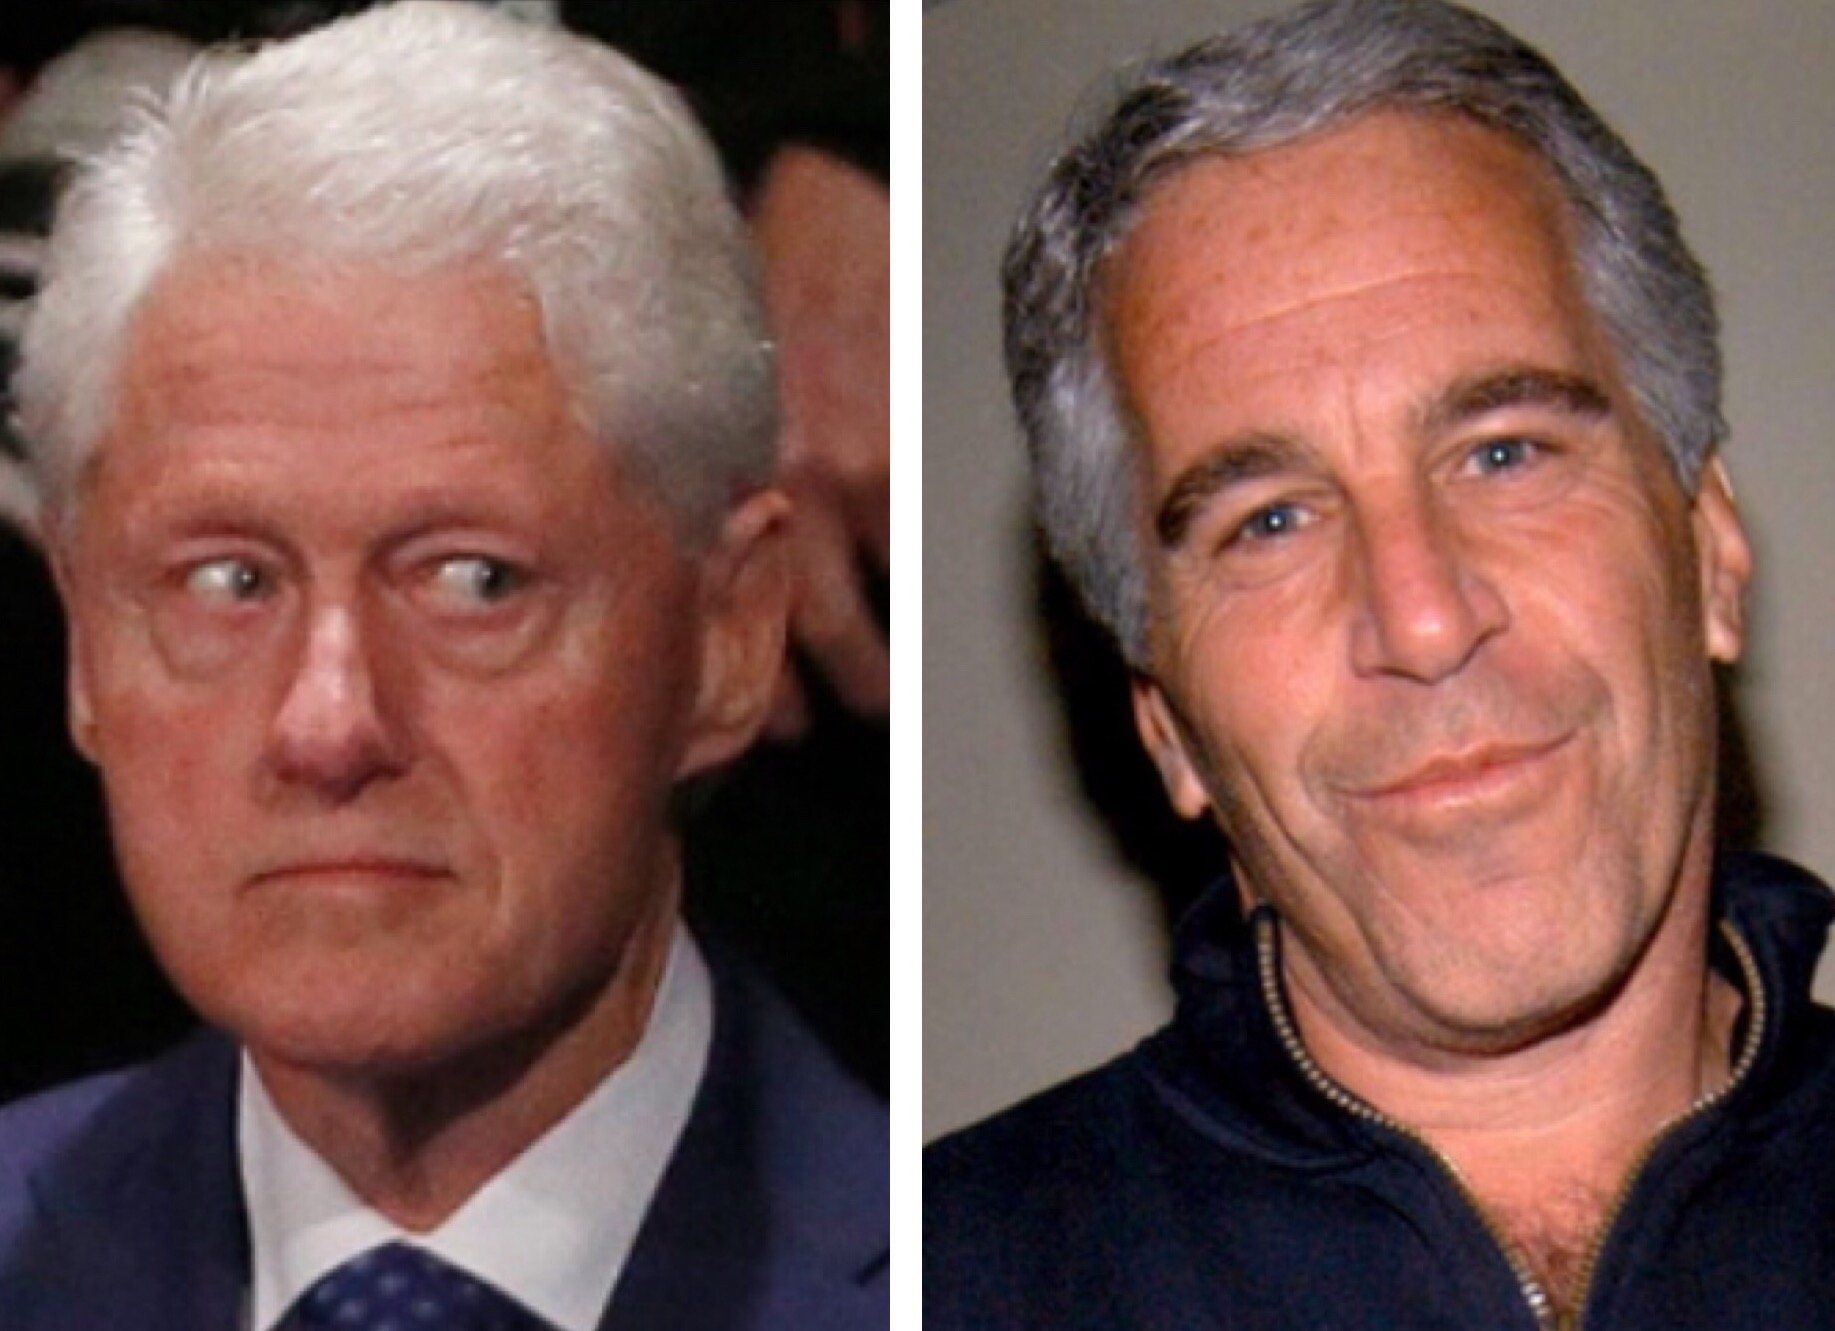 Logs for every flight made by Jeffrey Epstein?s aircraft over 21 years have been subpoenaed, ?sparking panic? among his rich and famous pals. (thegatewaypundit.com)